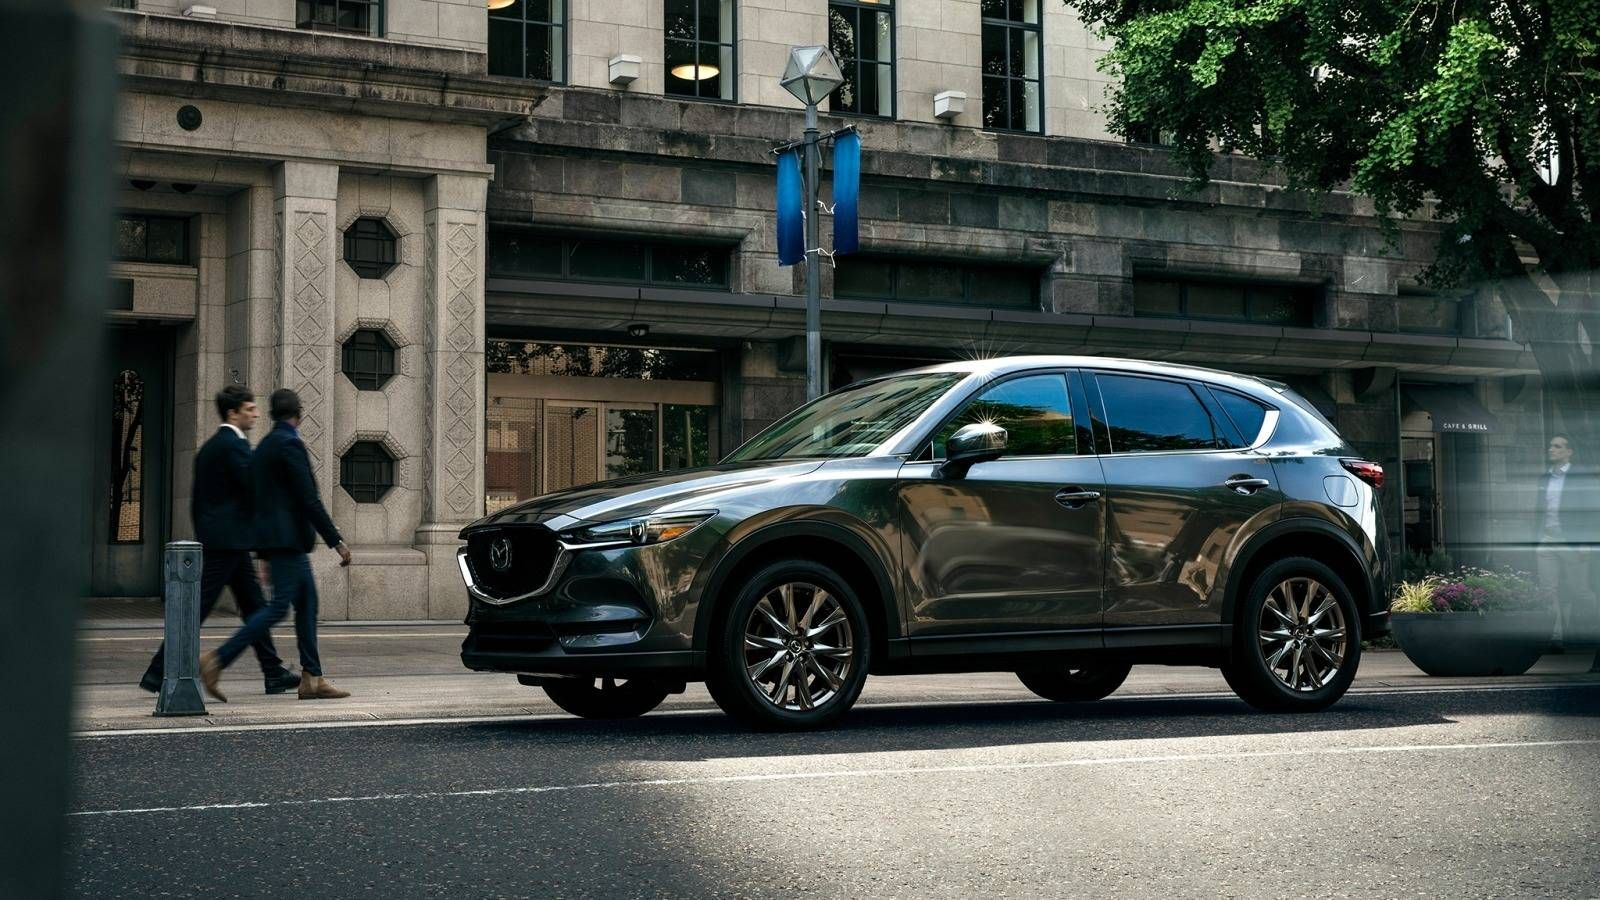 Best Small Suvs Top Rated Compact Suvs For 2020 Edmunds Compact Suv Mazda Suv